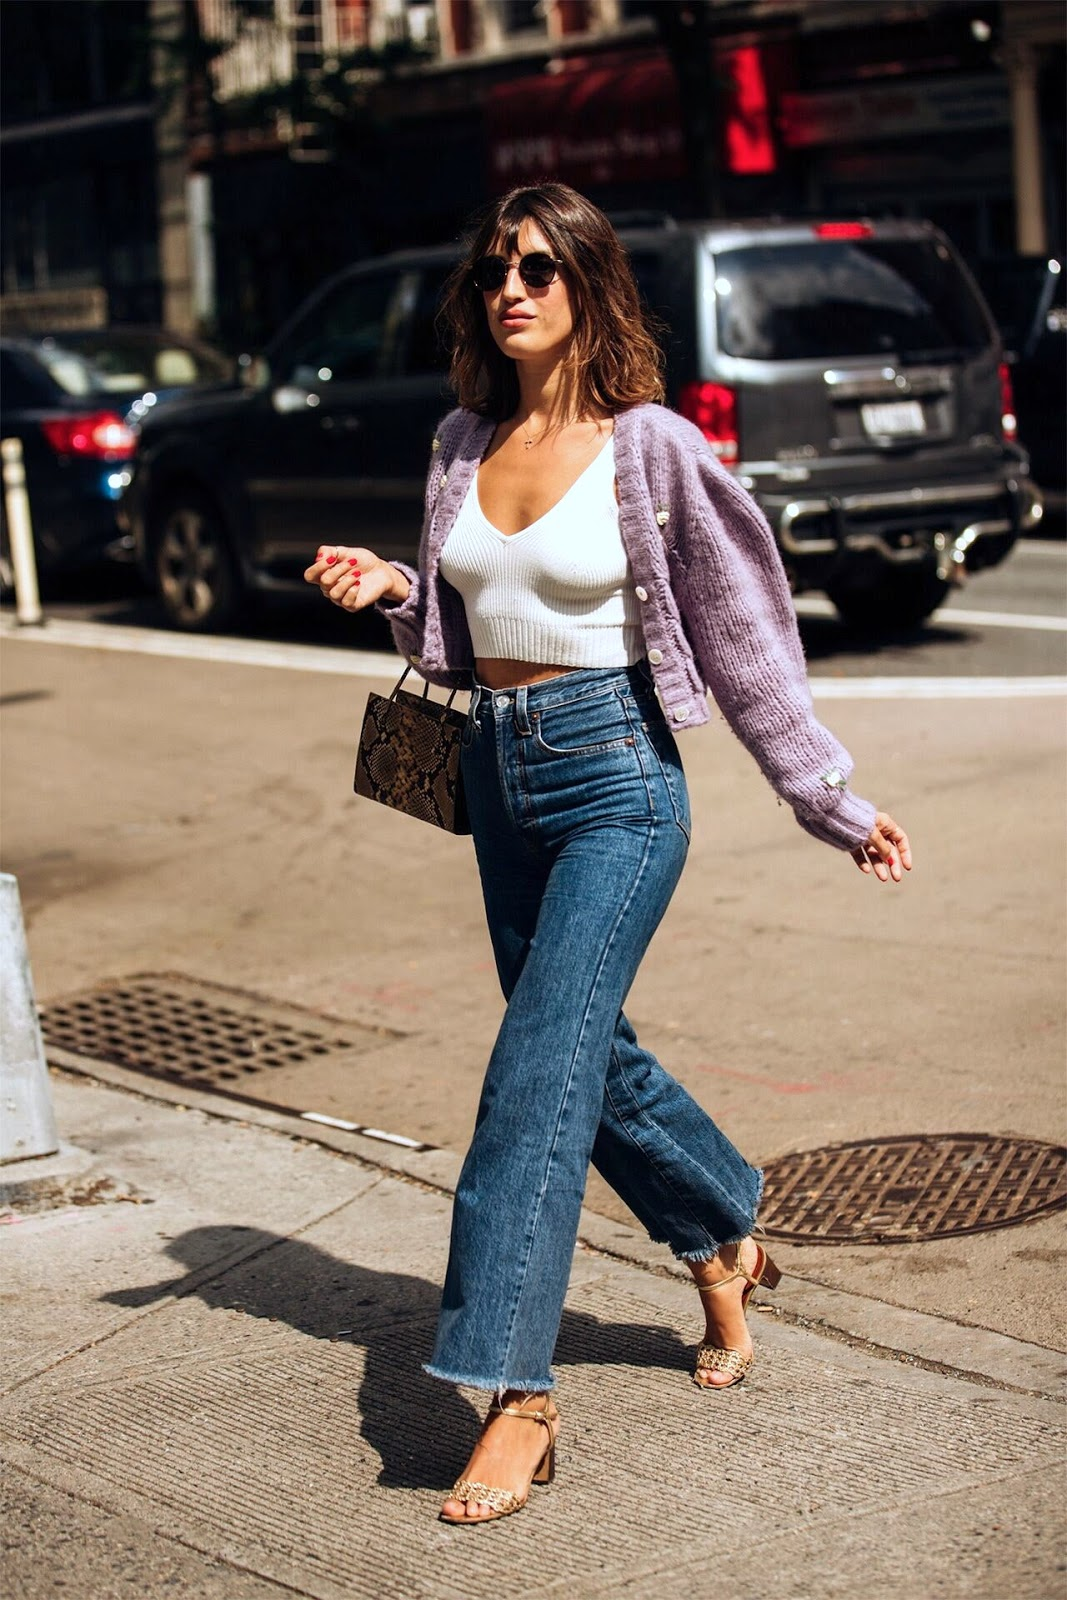 French-Girl Spring Outfit Idea — Jeanne Damas in a purple cardigan, white tank top, snake-print bag, high-waisted jeans, and sandals